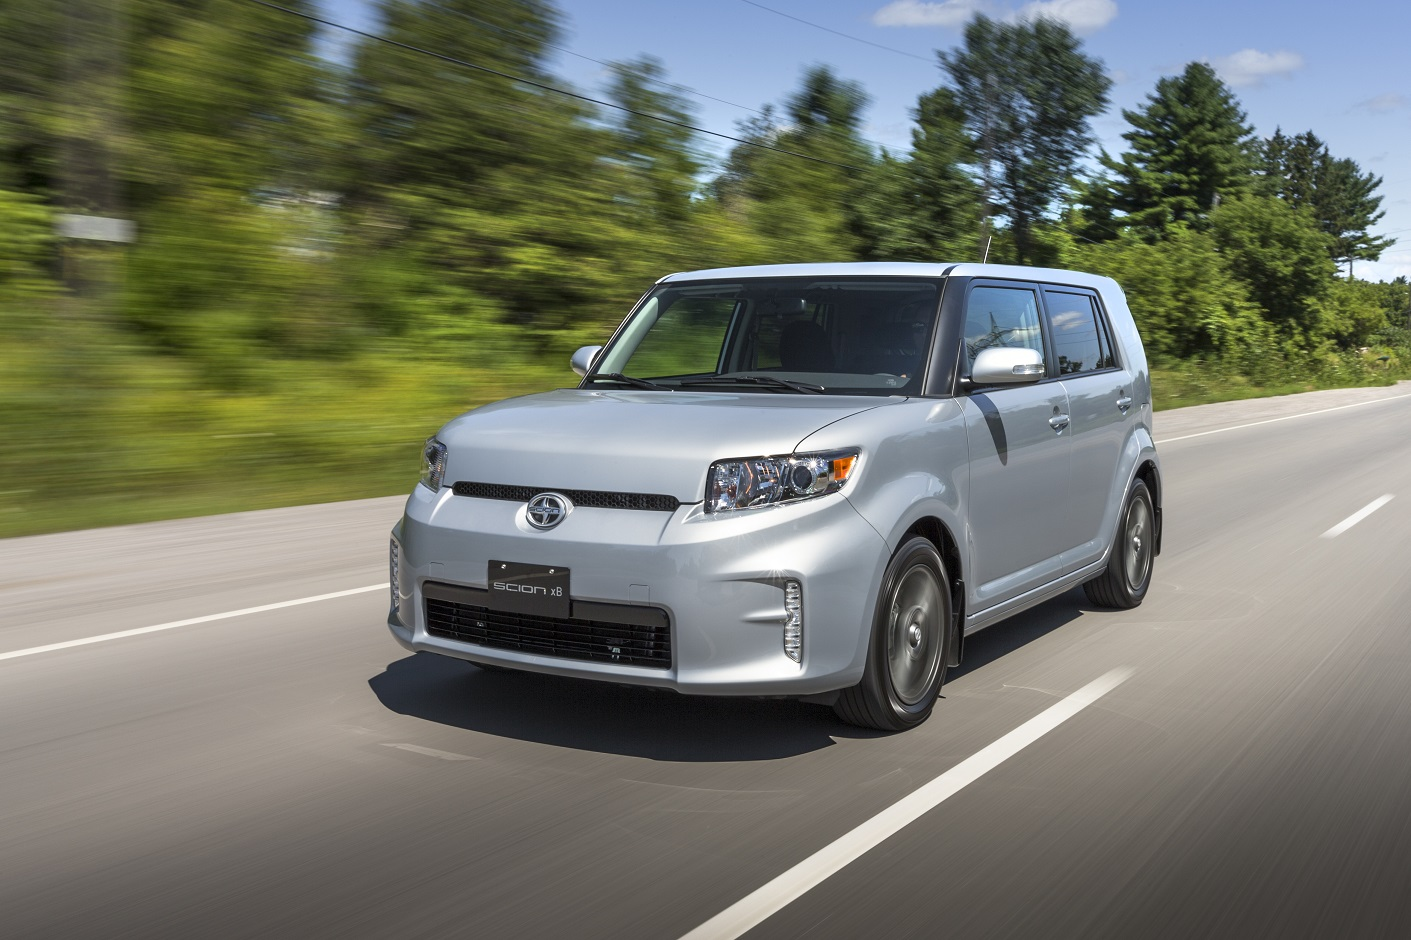 Scion's first model, the xB, was axed last year. Now, the brand follows (Image: Toyota Canada)